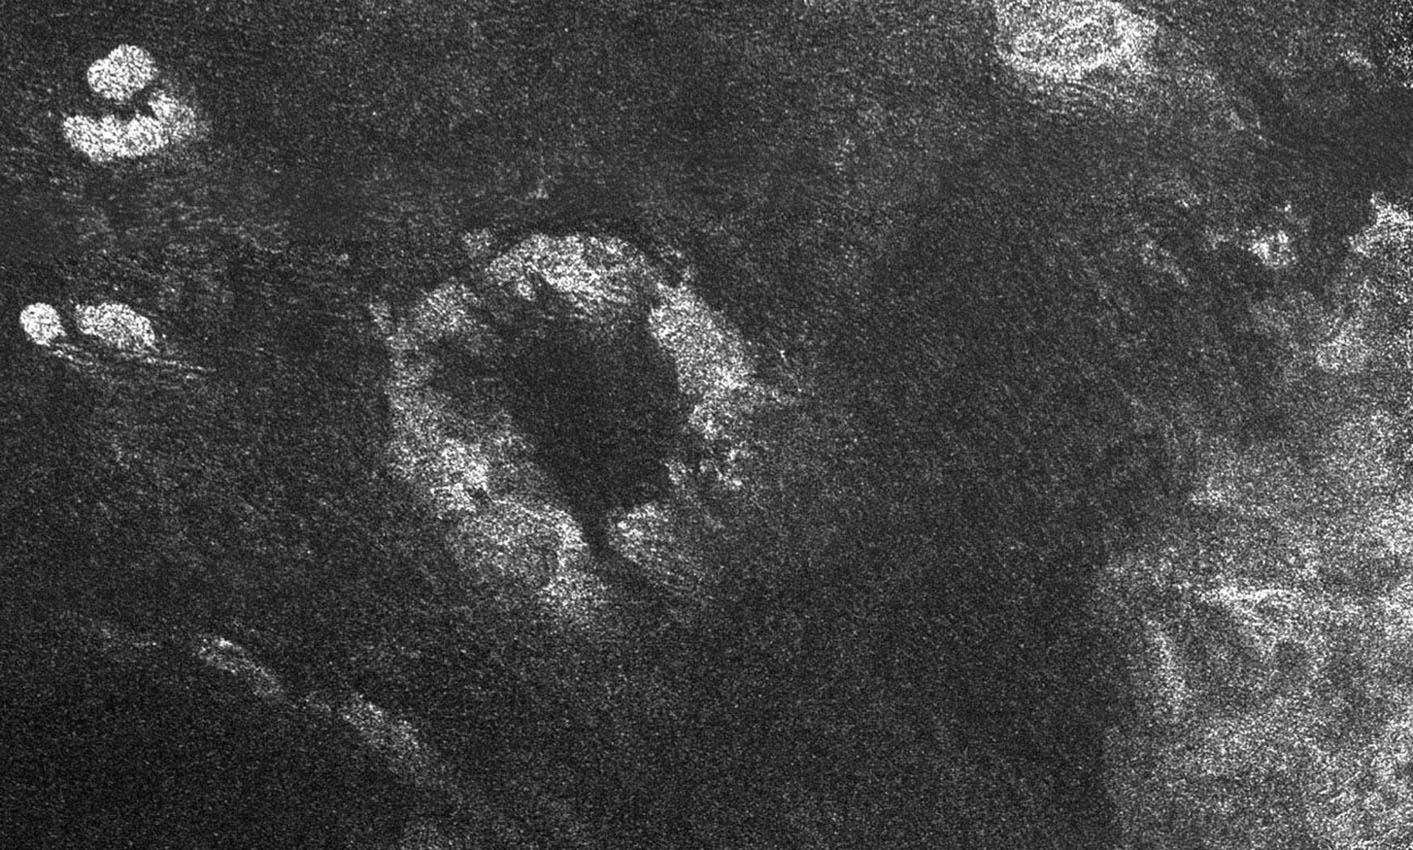 This image of Saturn's moon Titan from the Synthetic Aperture Radar instrument on NASA's Cassini spacecraft shows the southwestern area of a feature called Xanadu (bottom right of the image).